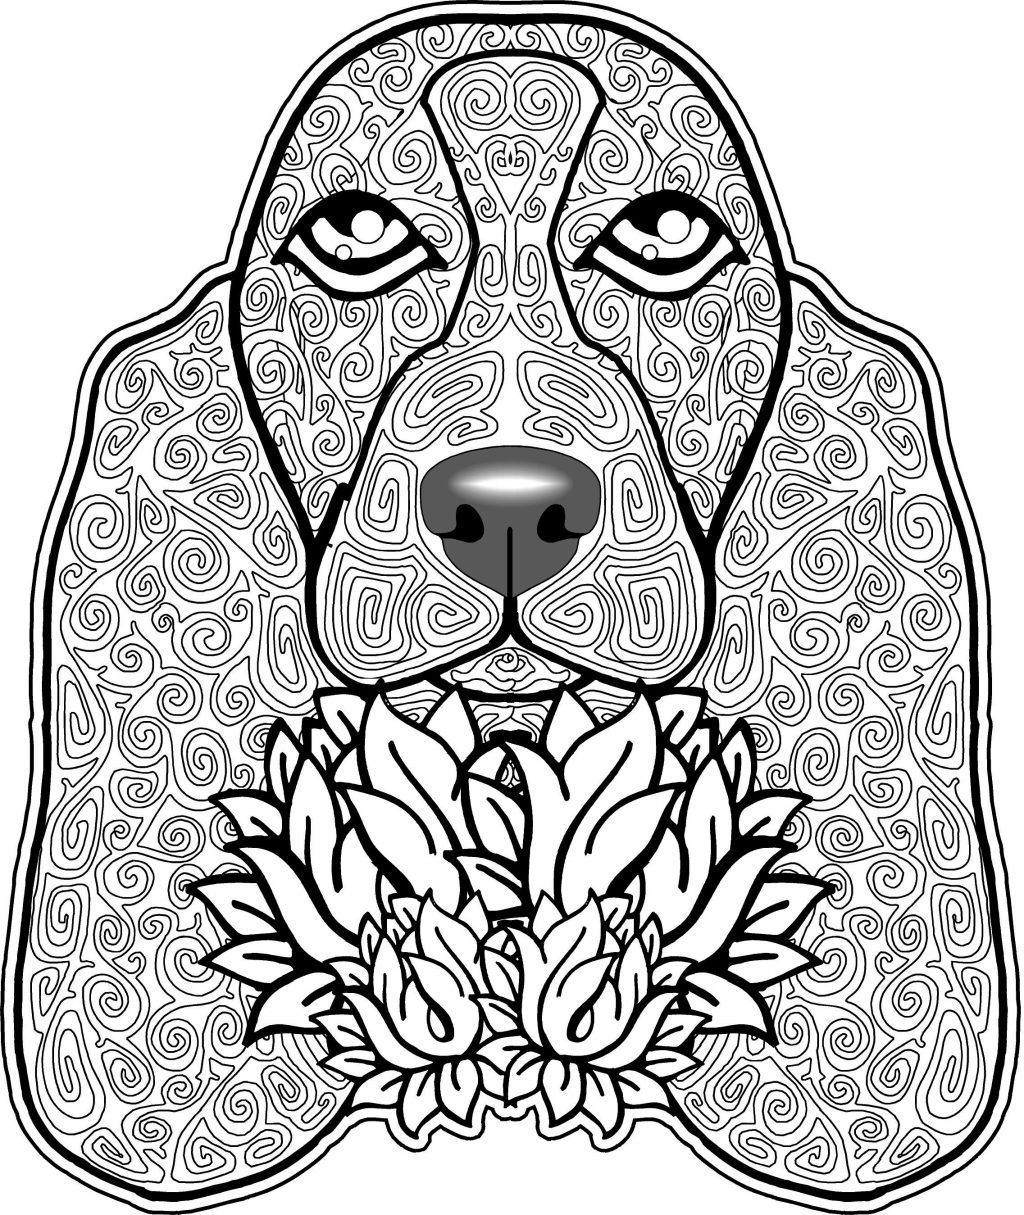 27 Wonderful Image Of Dog Coloring Pages For Adults Dog